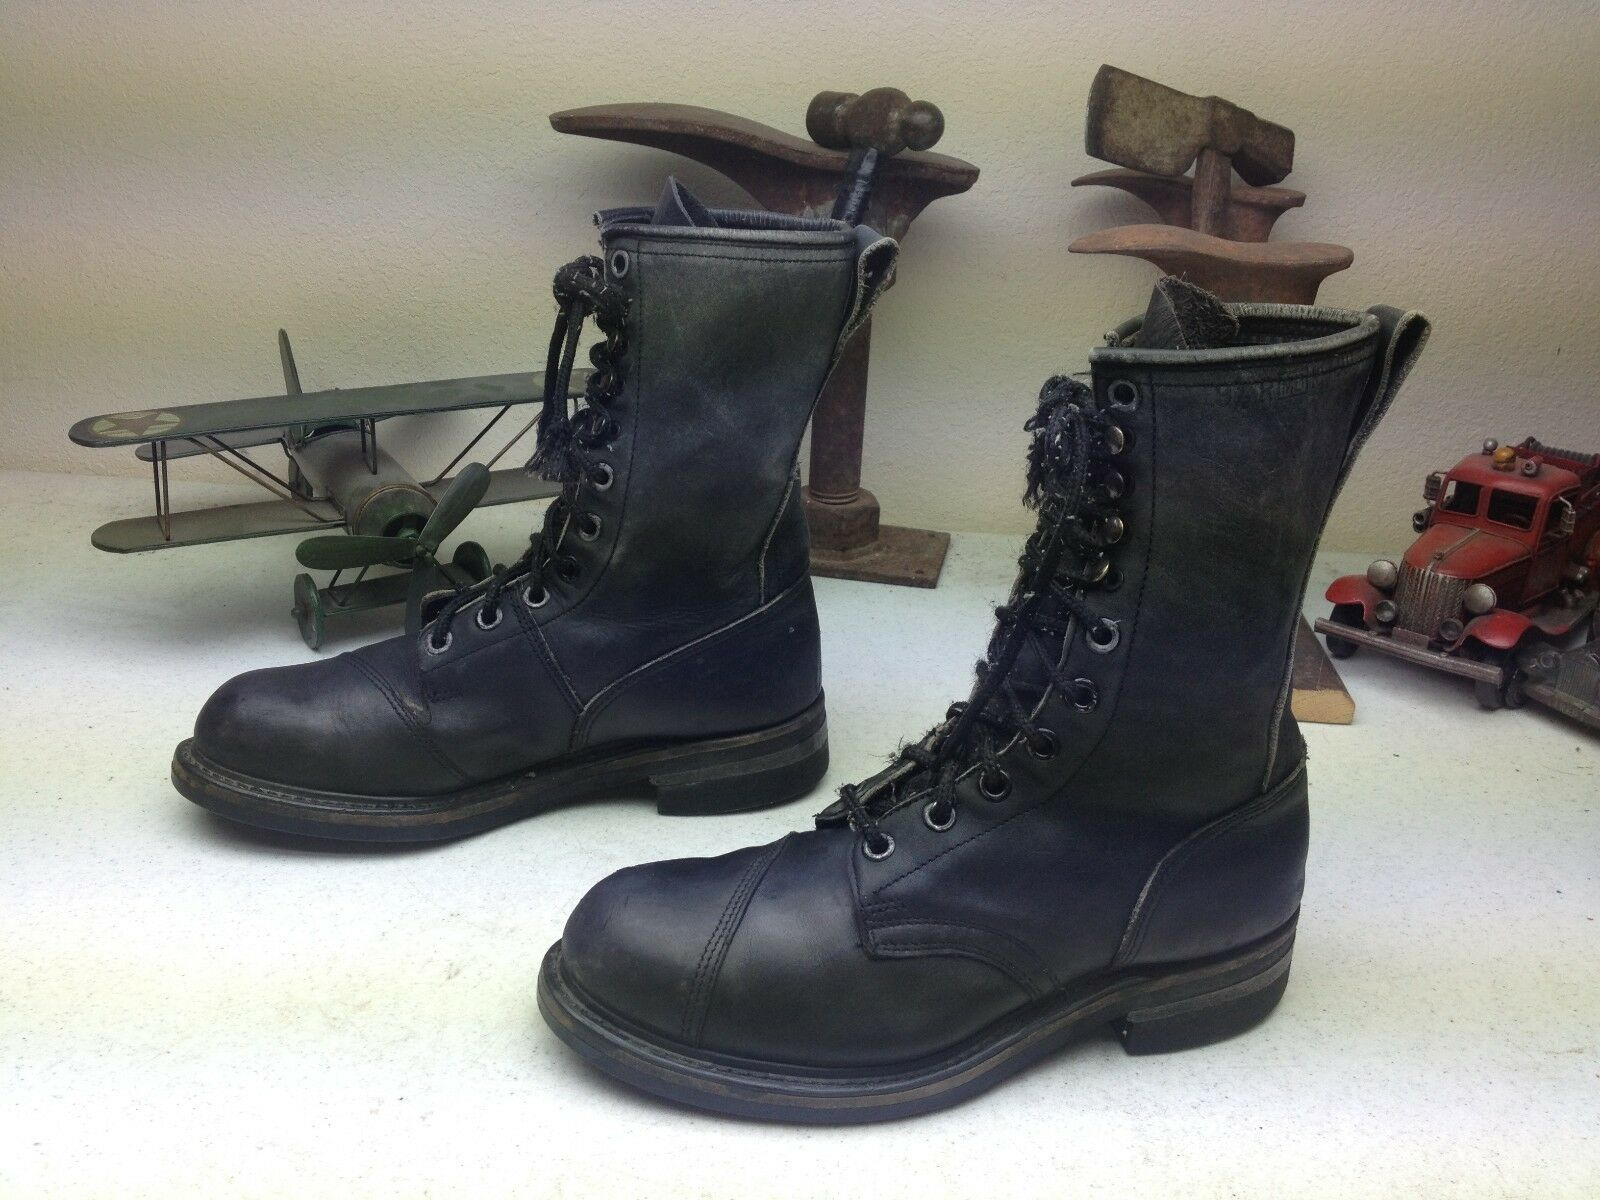 DISTRESSED VINTAGE STEEL TOE USA LACE UP MILITARY ENGINEER WORK BOOTS 9.5 M